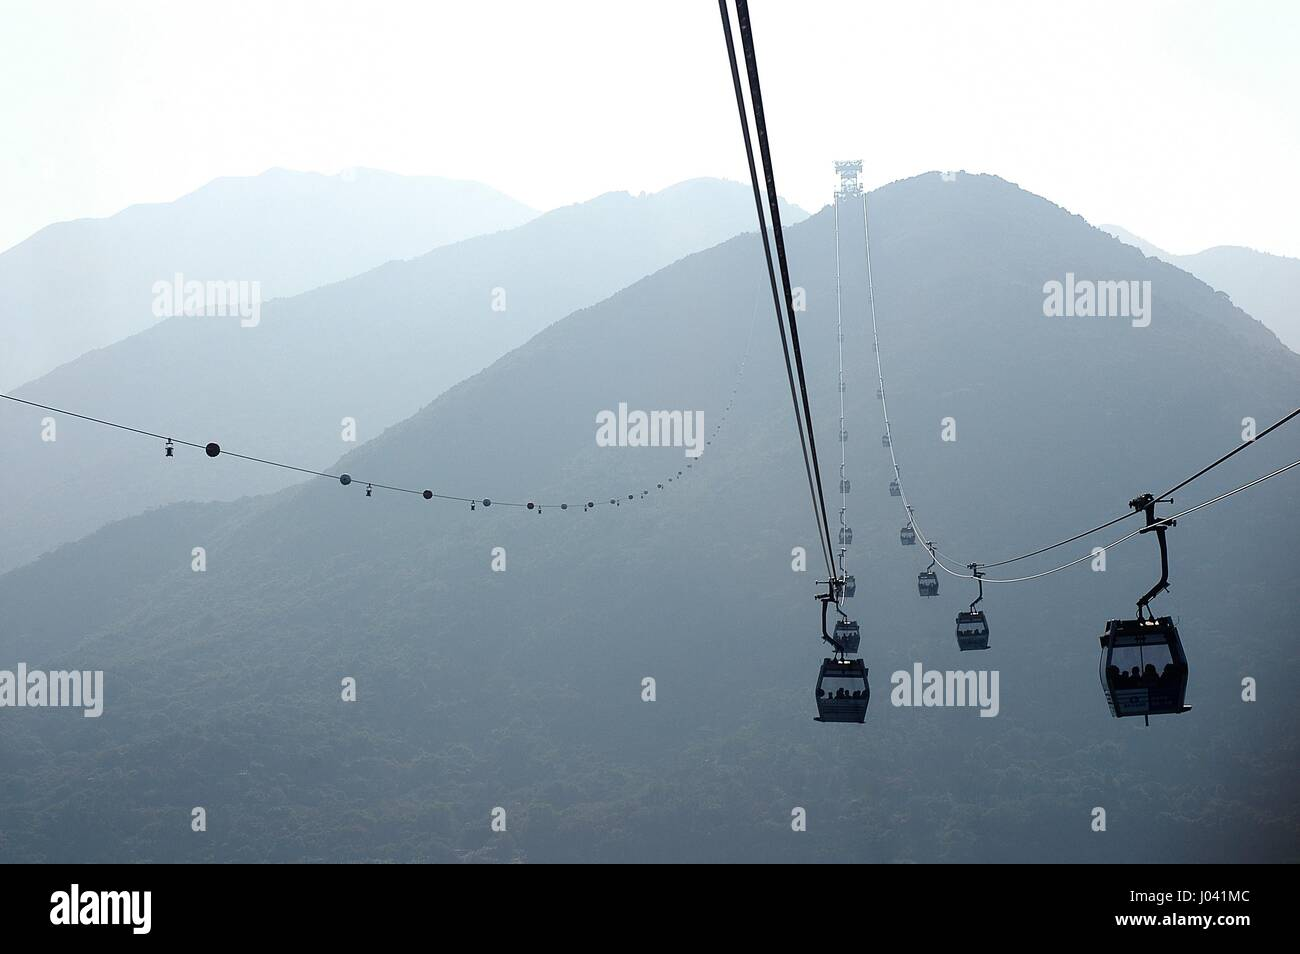 A sweeping view of mountains aboard Ngong Ping 360, Lantau Island. - Stock Image